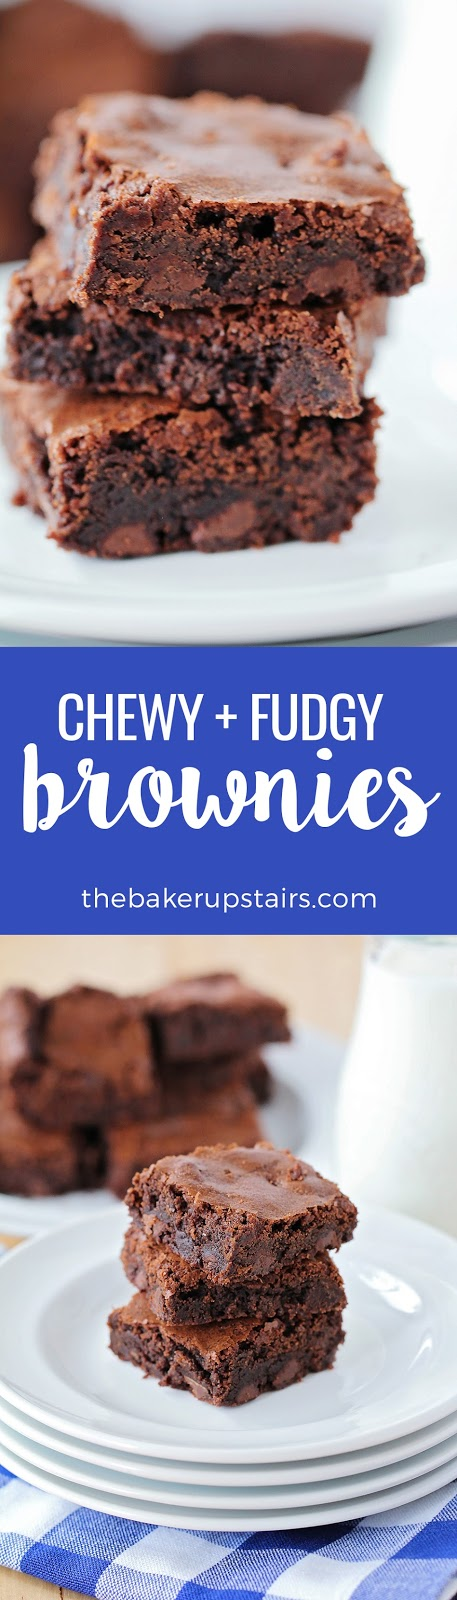 These chewy and fudgy brownies are so rich and decadent, and take just a few minutes to mix up. They're perfect for satisfying those chocolate cravings any time!